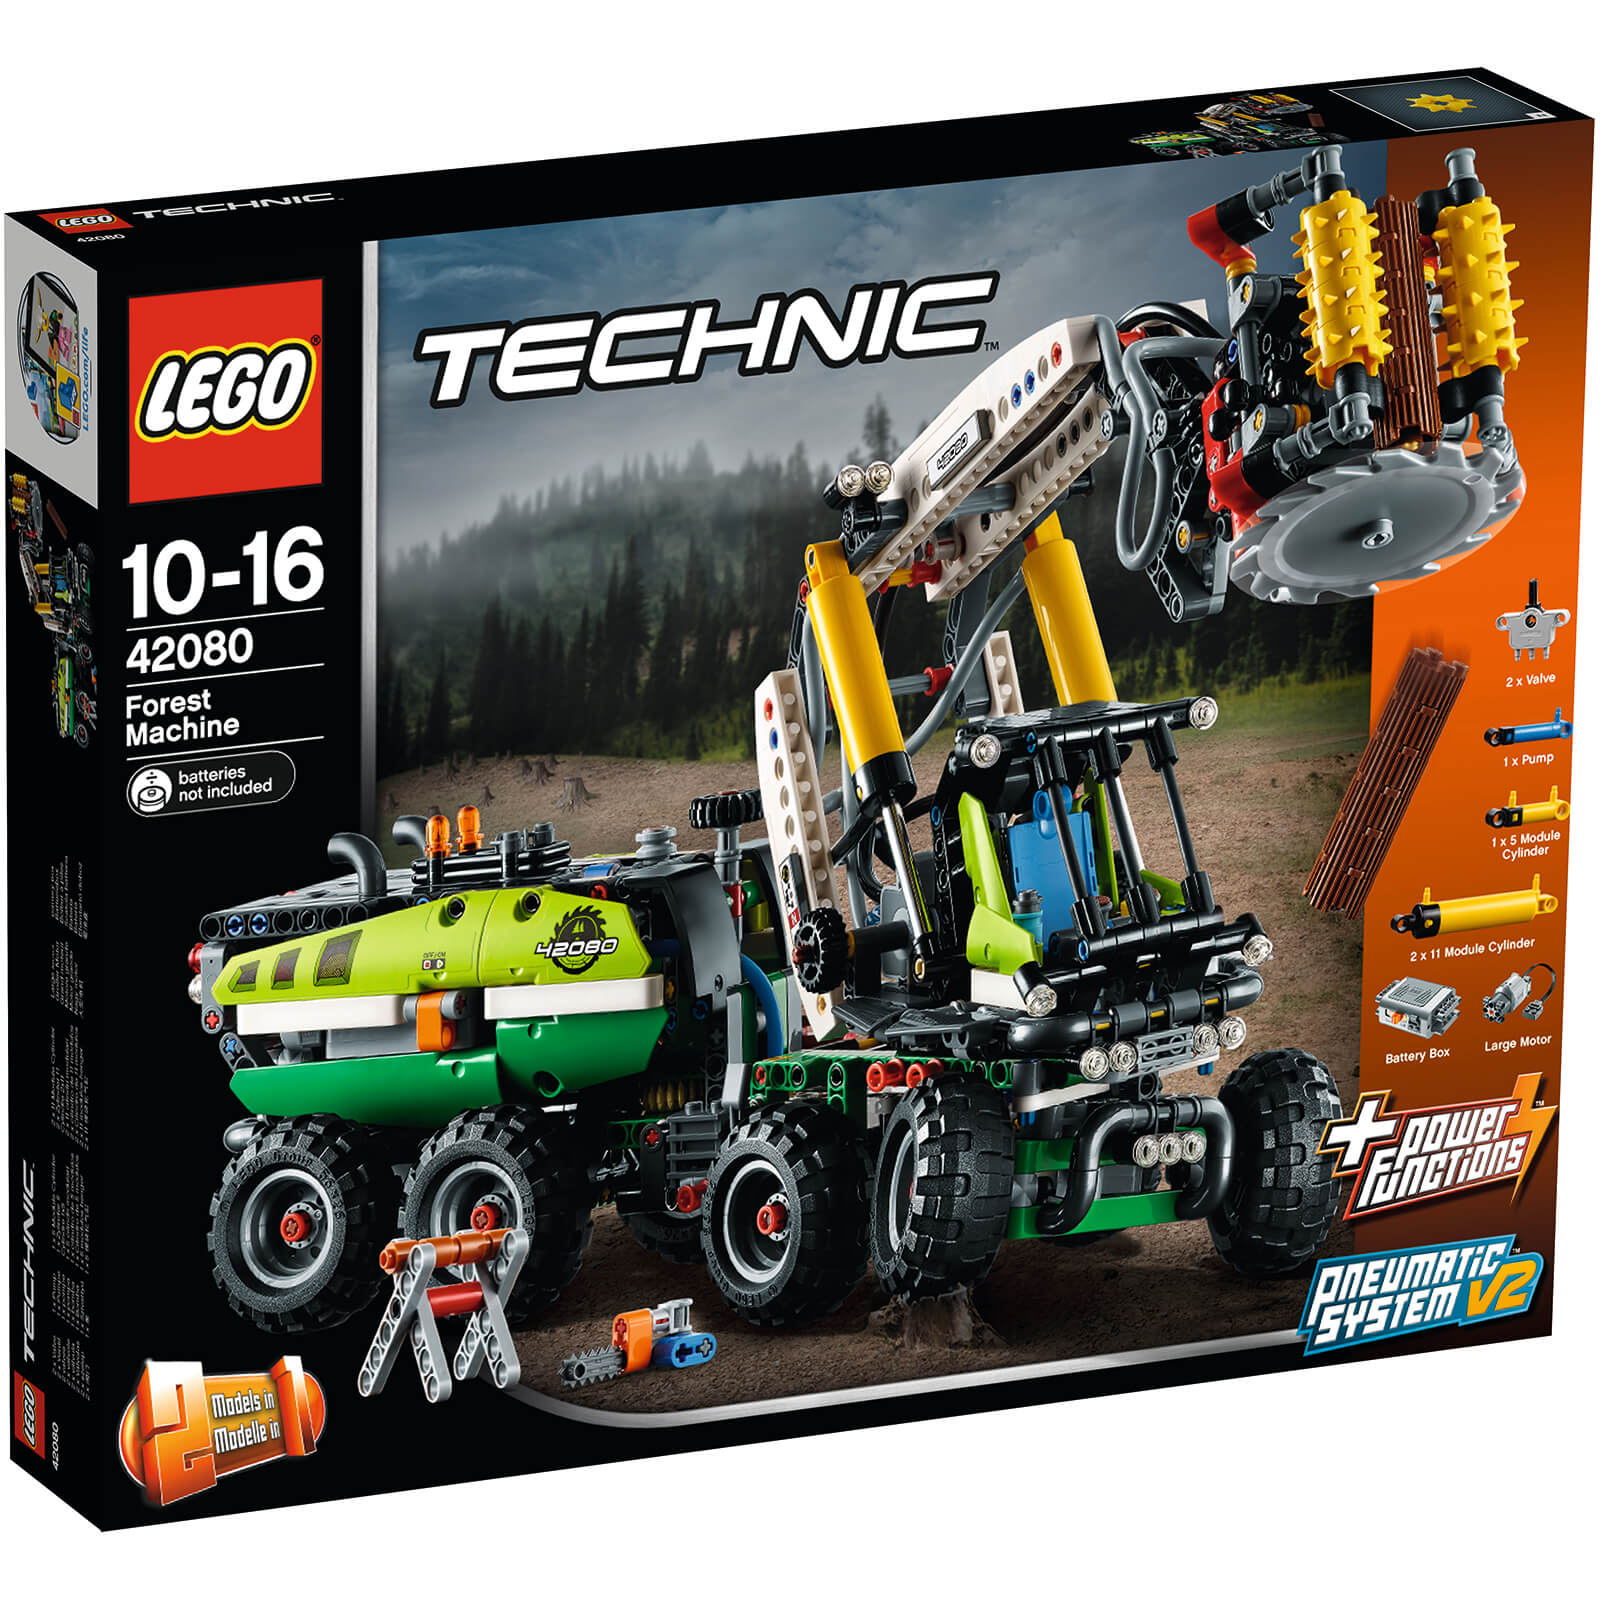 Lego Technic With Power Functions Forest Machine 42080 Toys